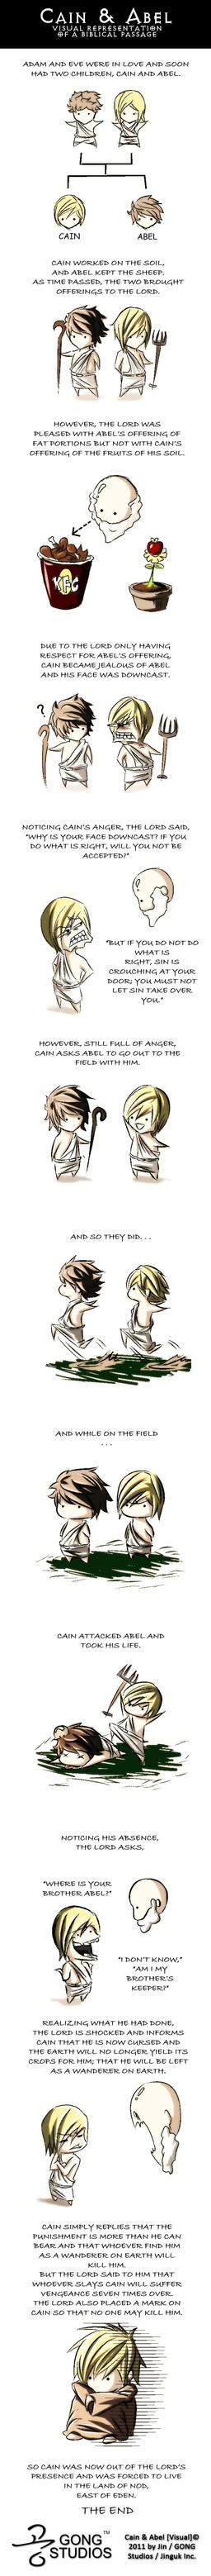 cain and abel comic by jinbae on deviantart